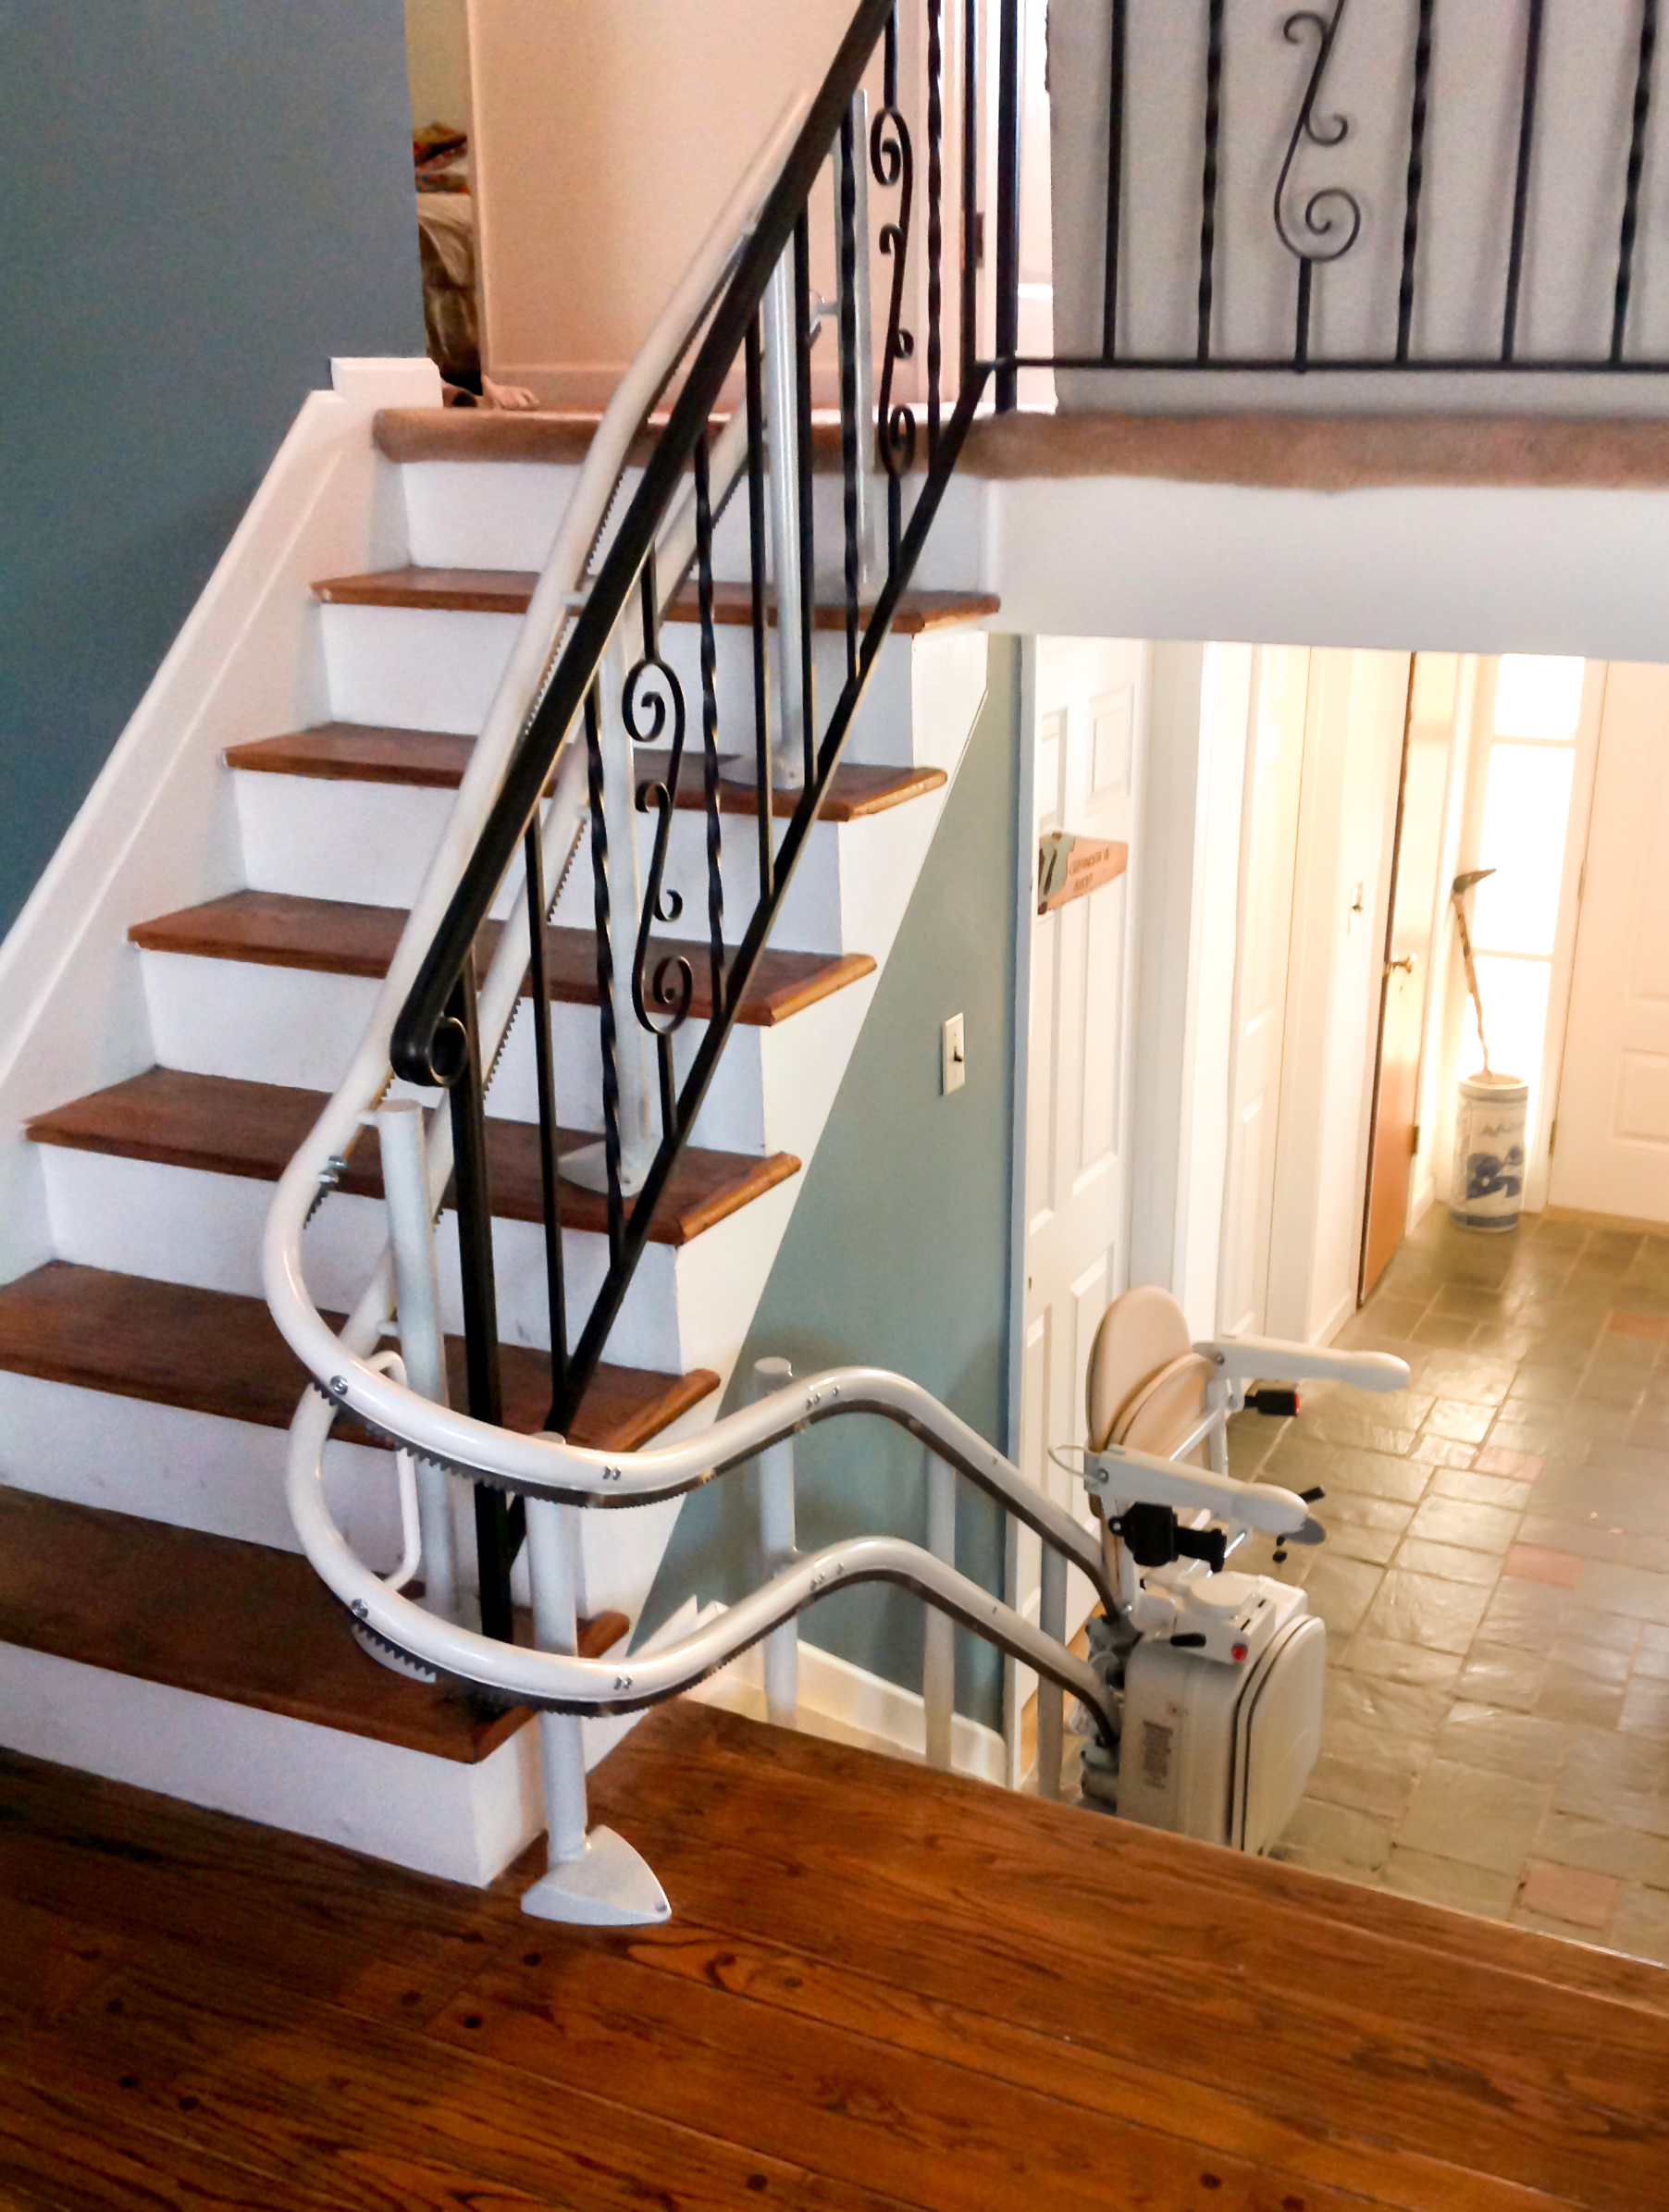 Curved Rail Stair Lifts, Stairlift for Curved Stairs | Centerspan